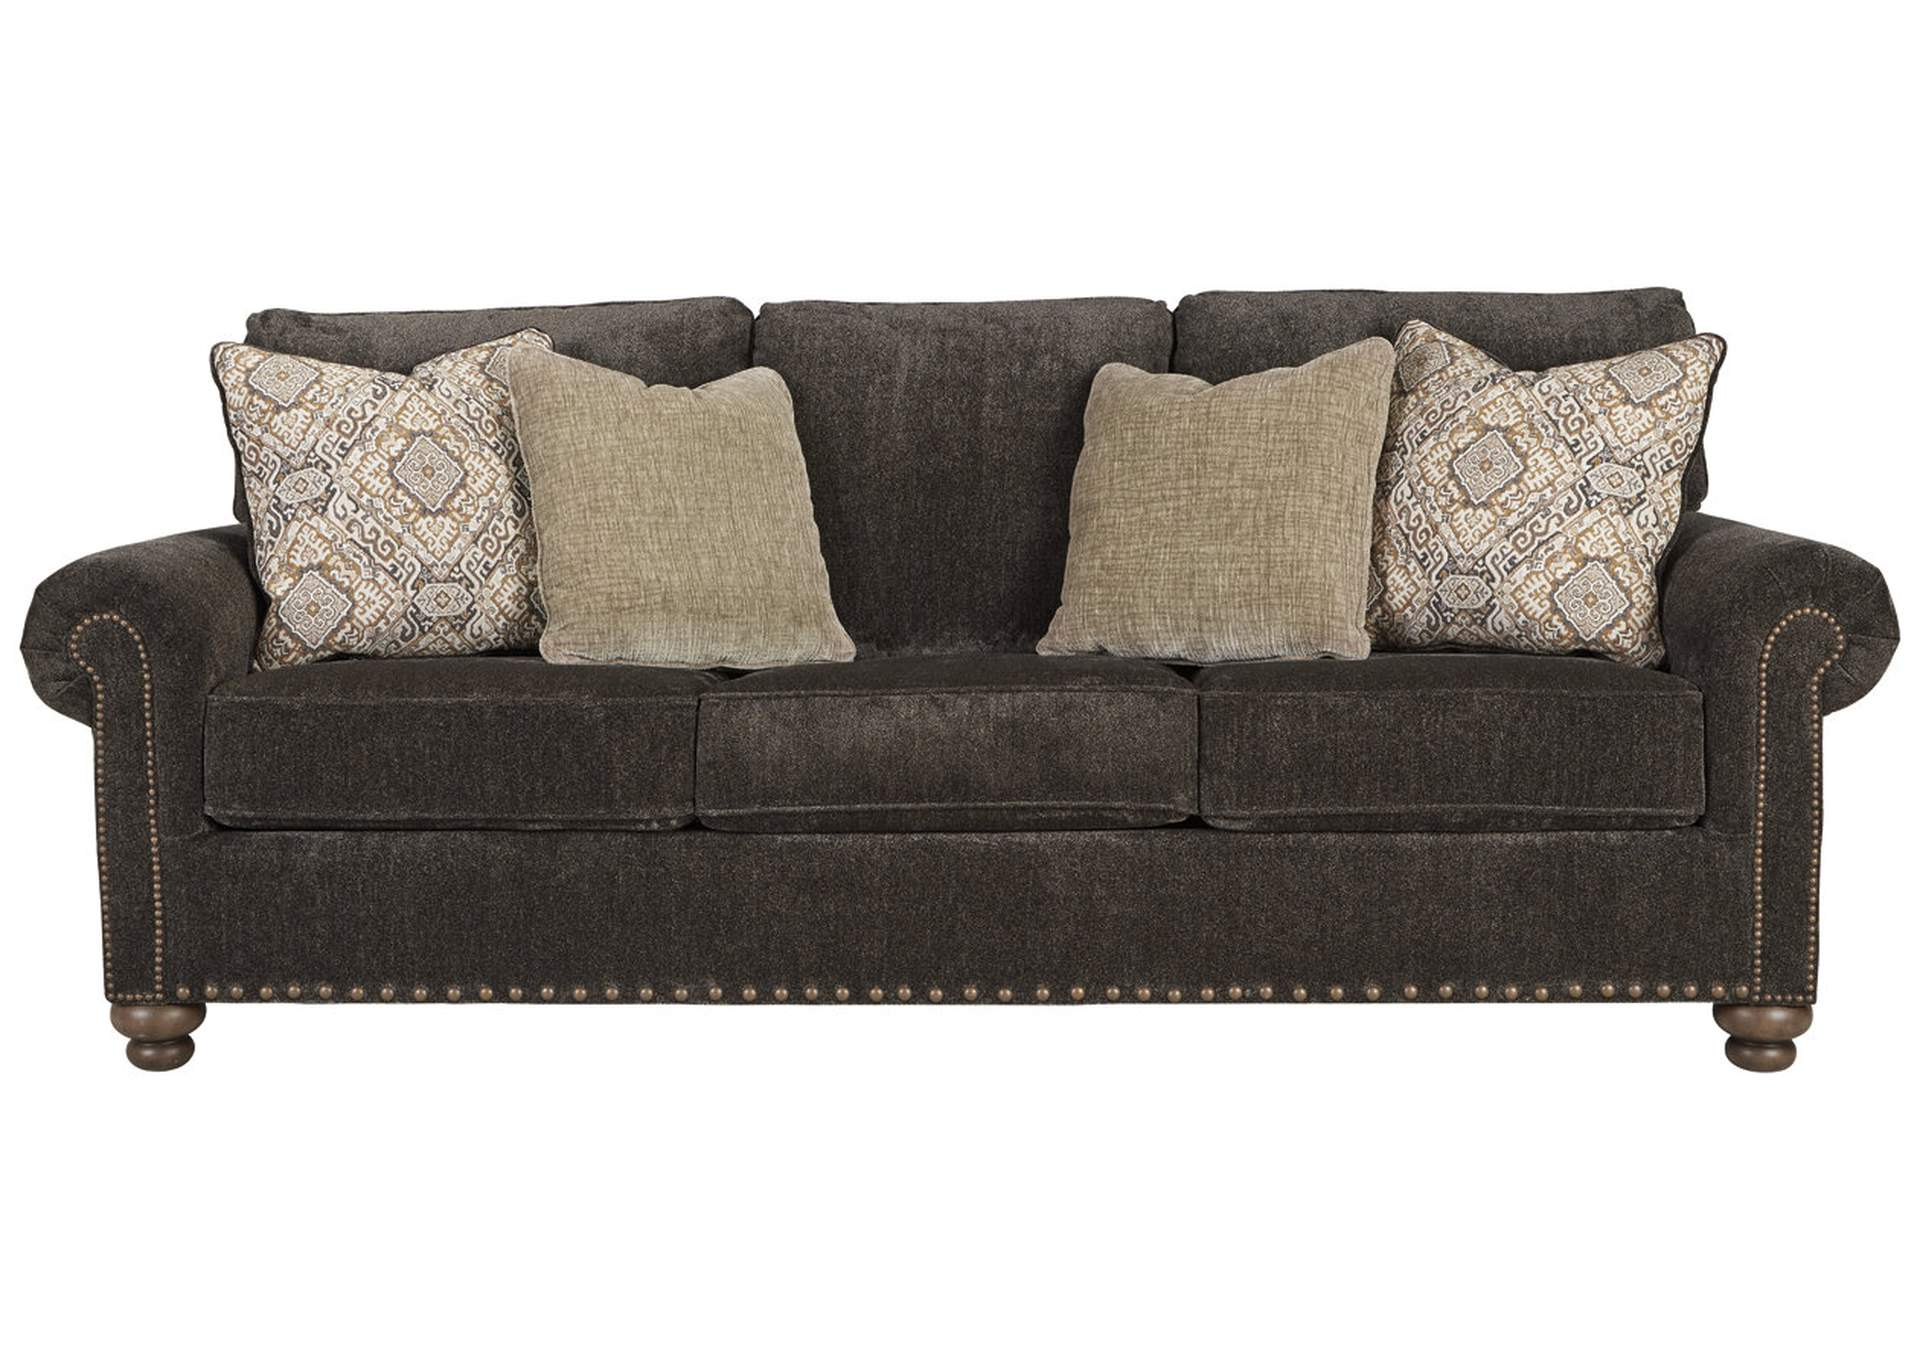 Stracelen Sable Sofa,Signature Design By Ashley